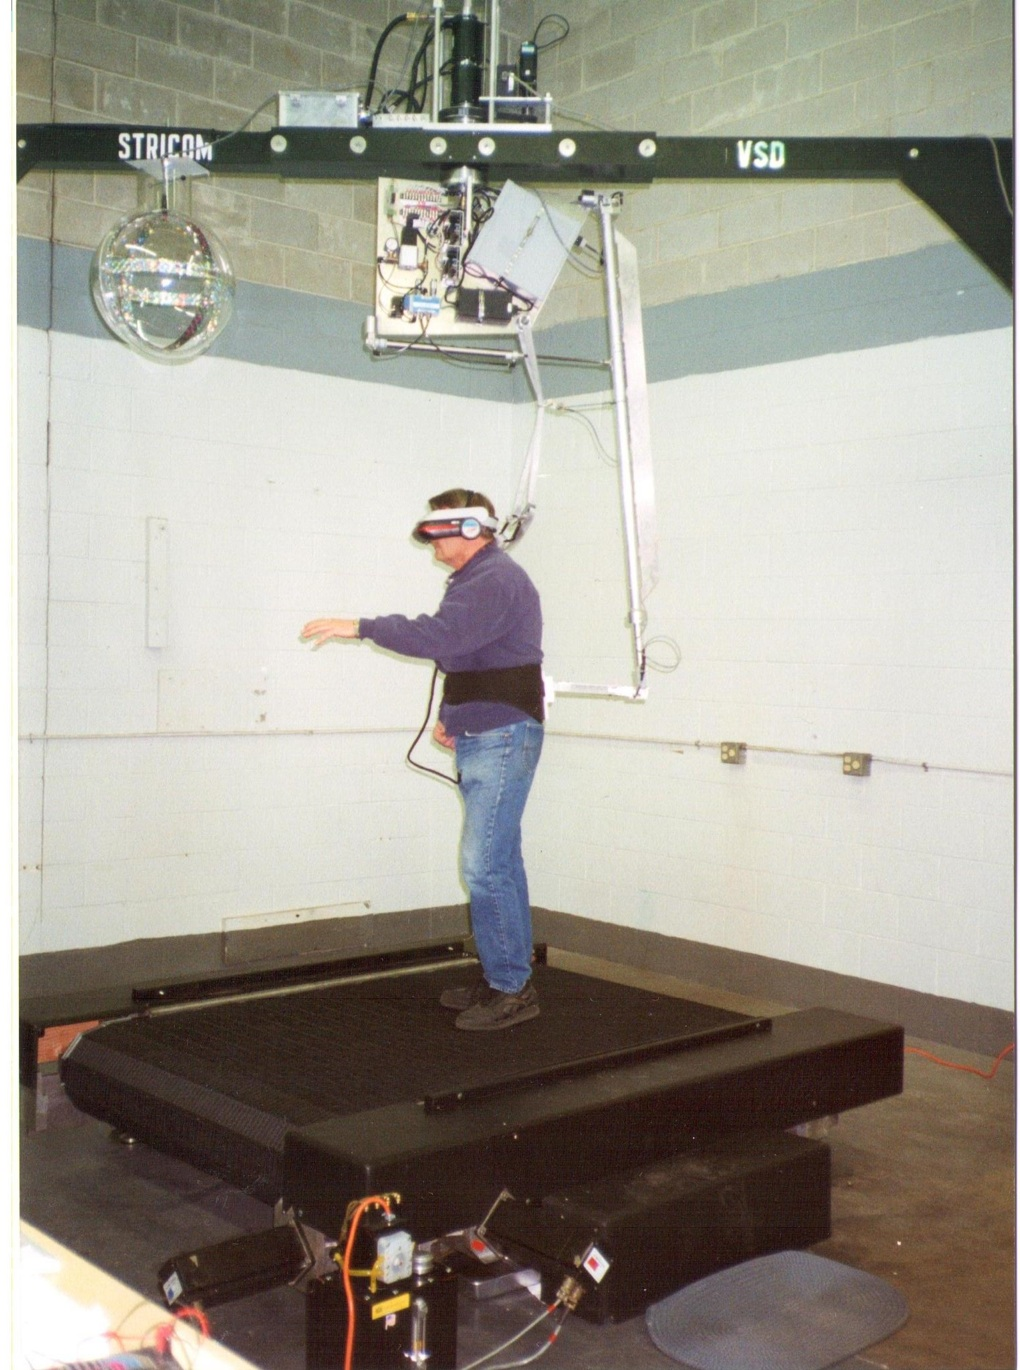 An early omnidirectional treadmill, used for walking in virtual reality